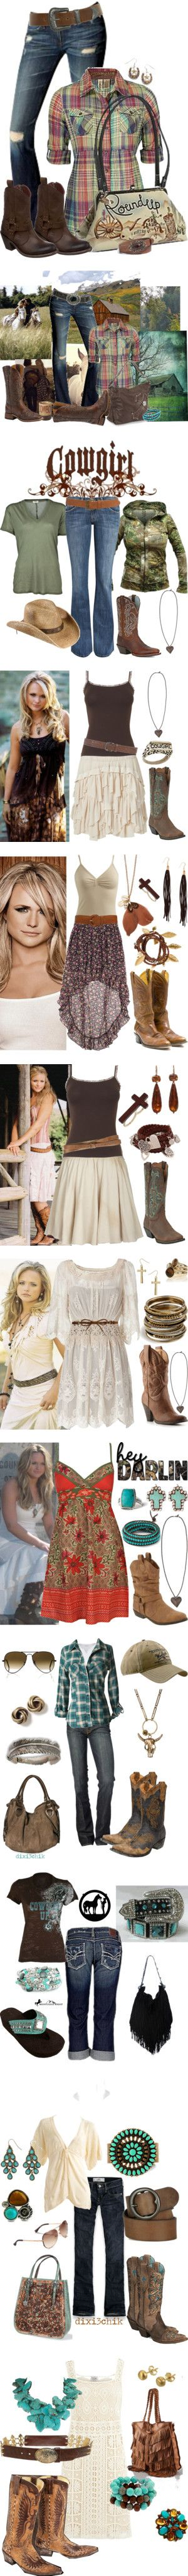 Country chic love outfits pinterest country chic and country